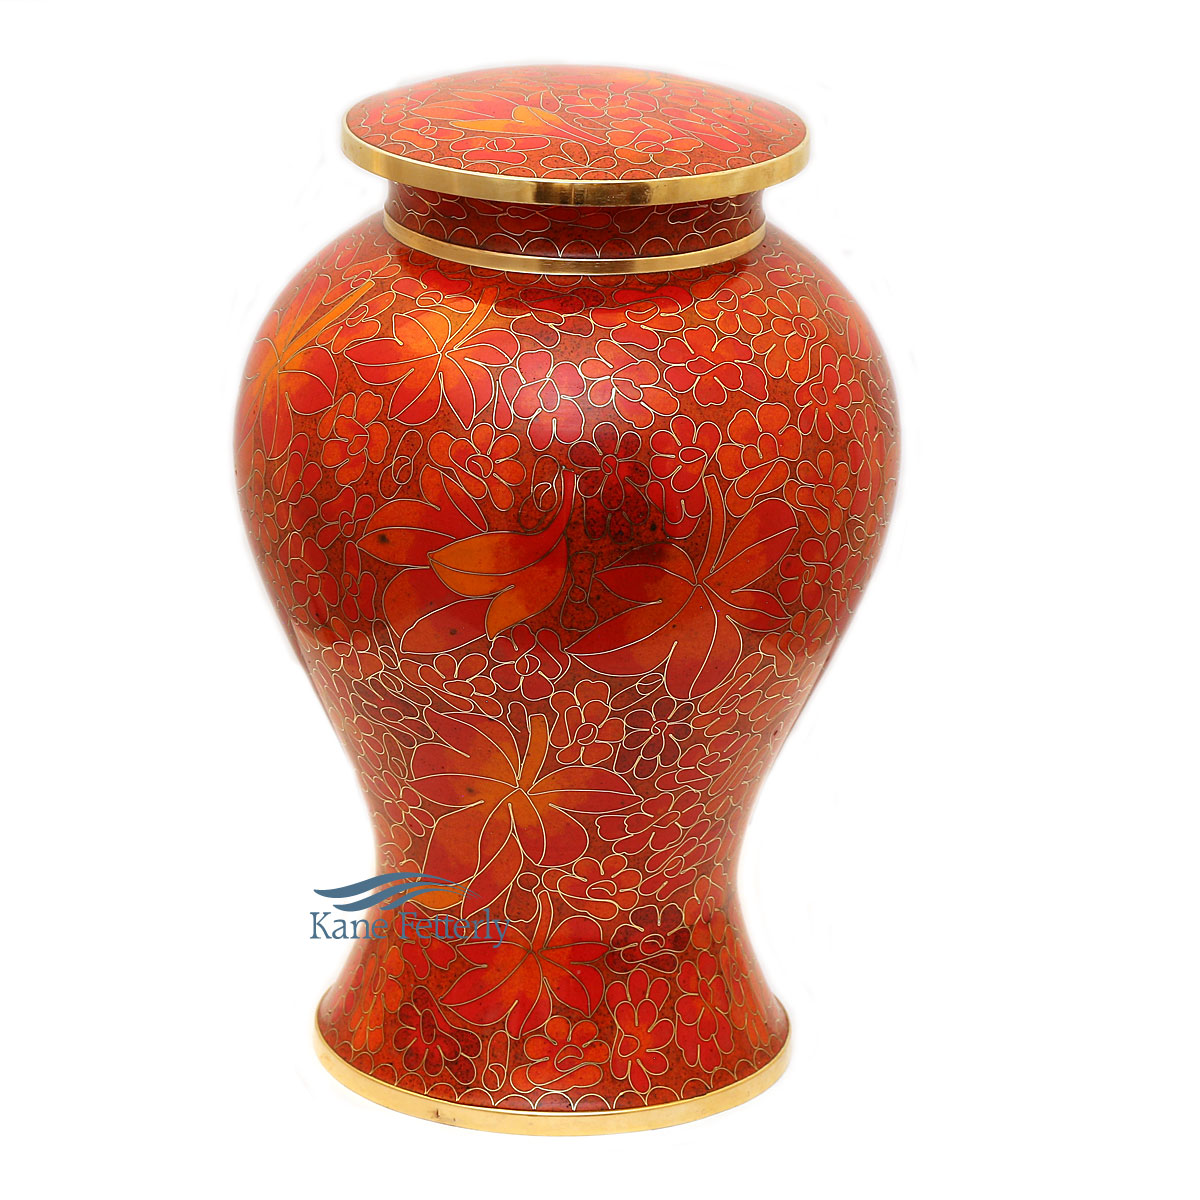 U8592 Cloisonné urn with leaves